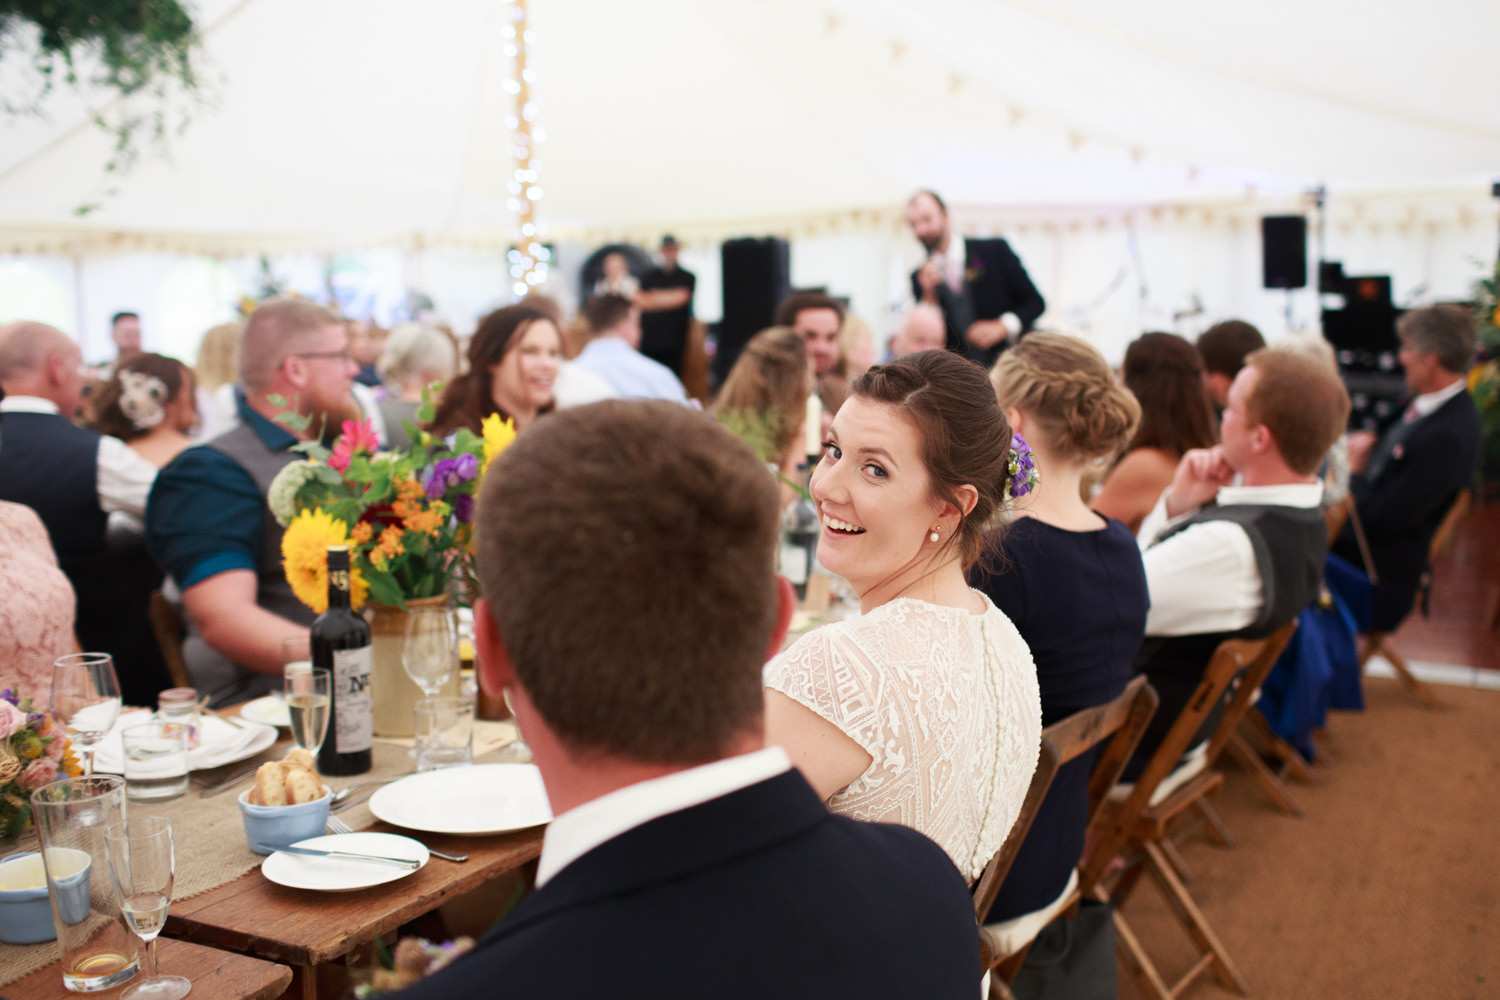 Farm Festival Wedding Photographer 061_.jpg